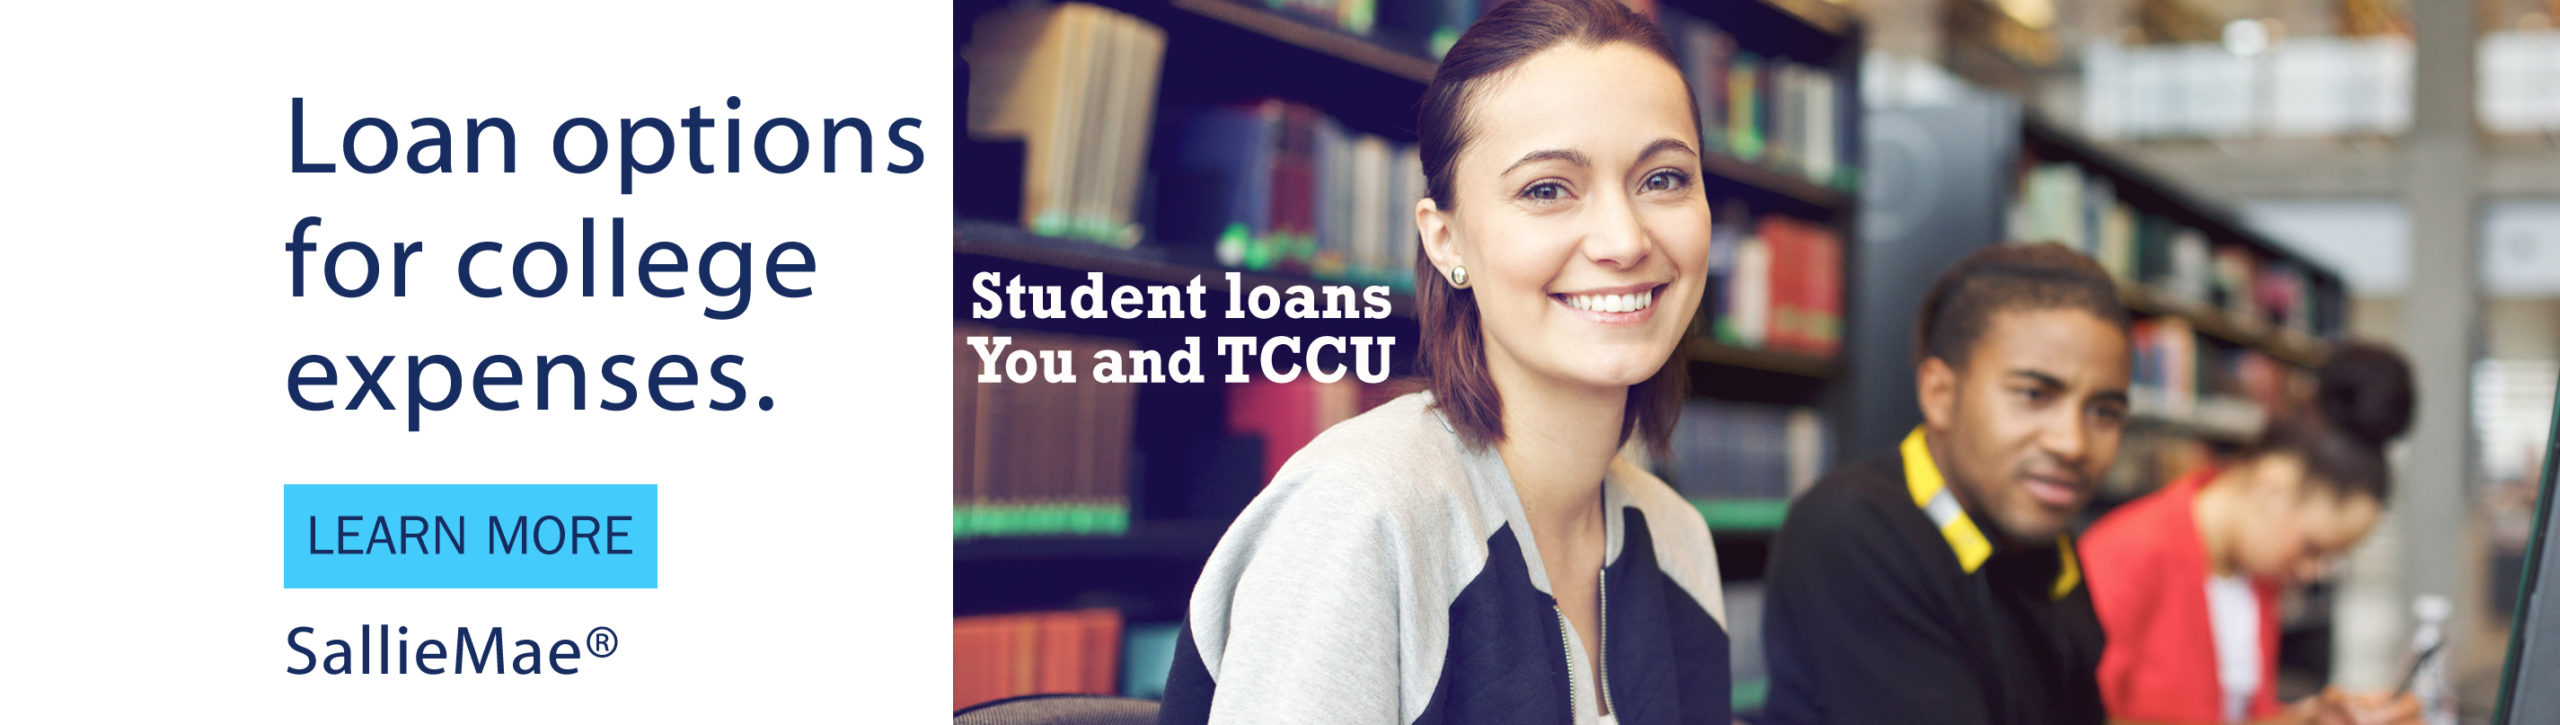 Loan options for college expenses. Learn More. SallieMae. Student Loans you and TCCU